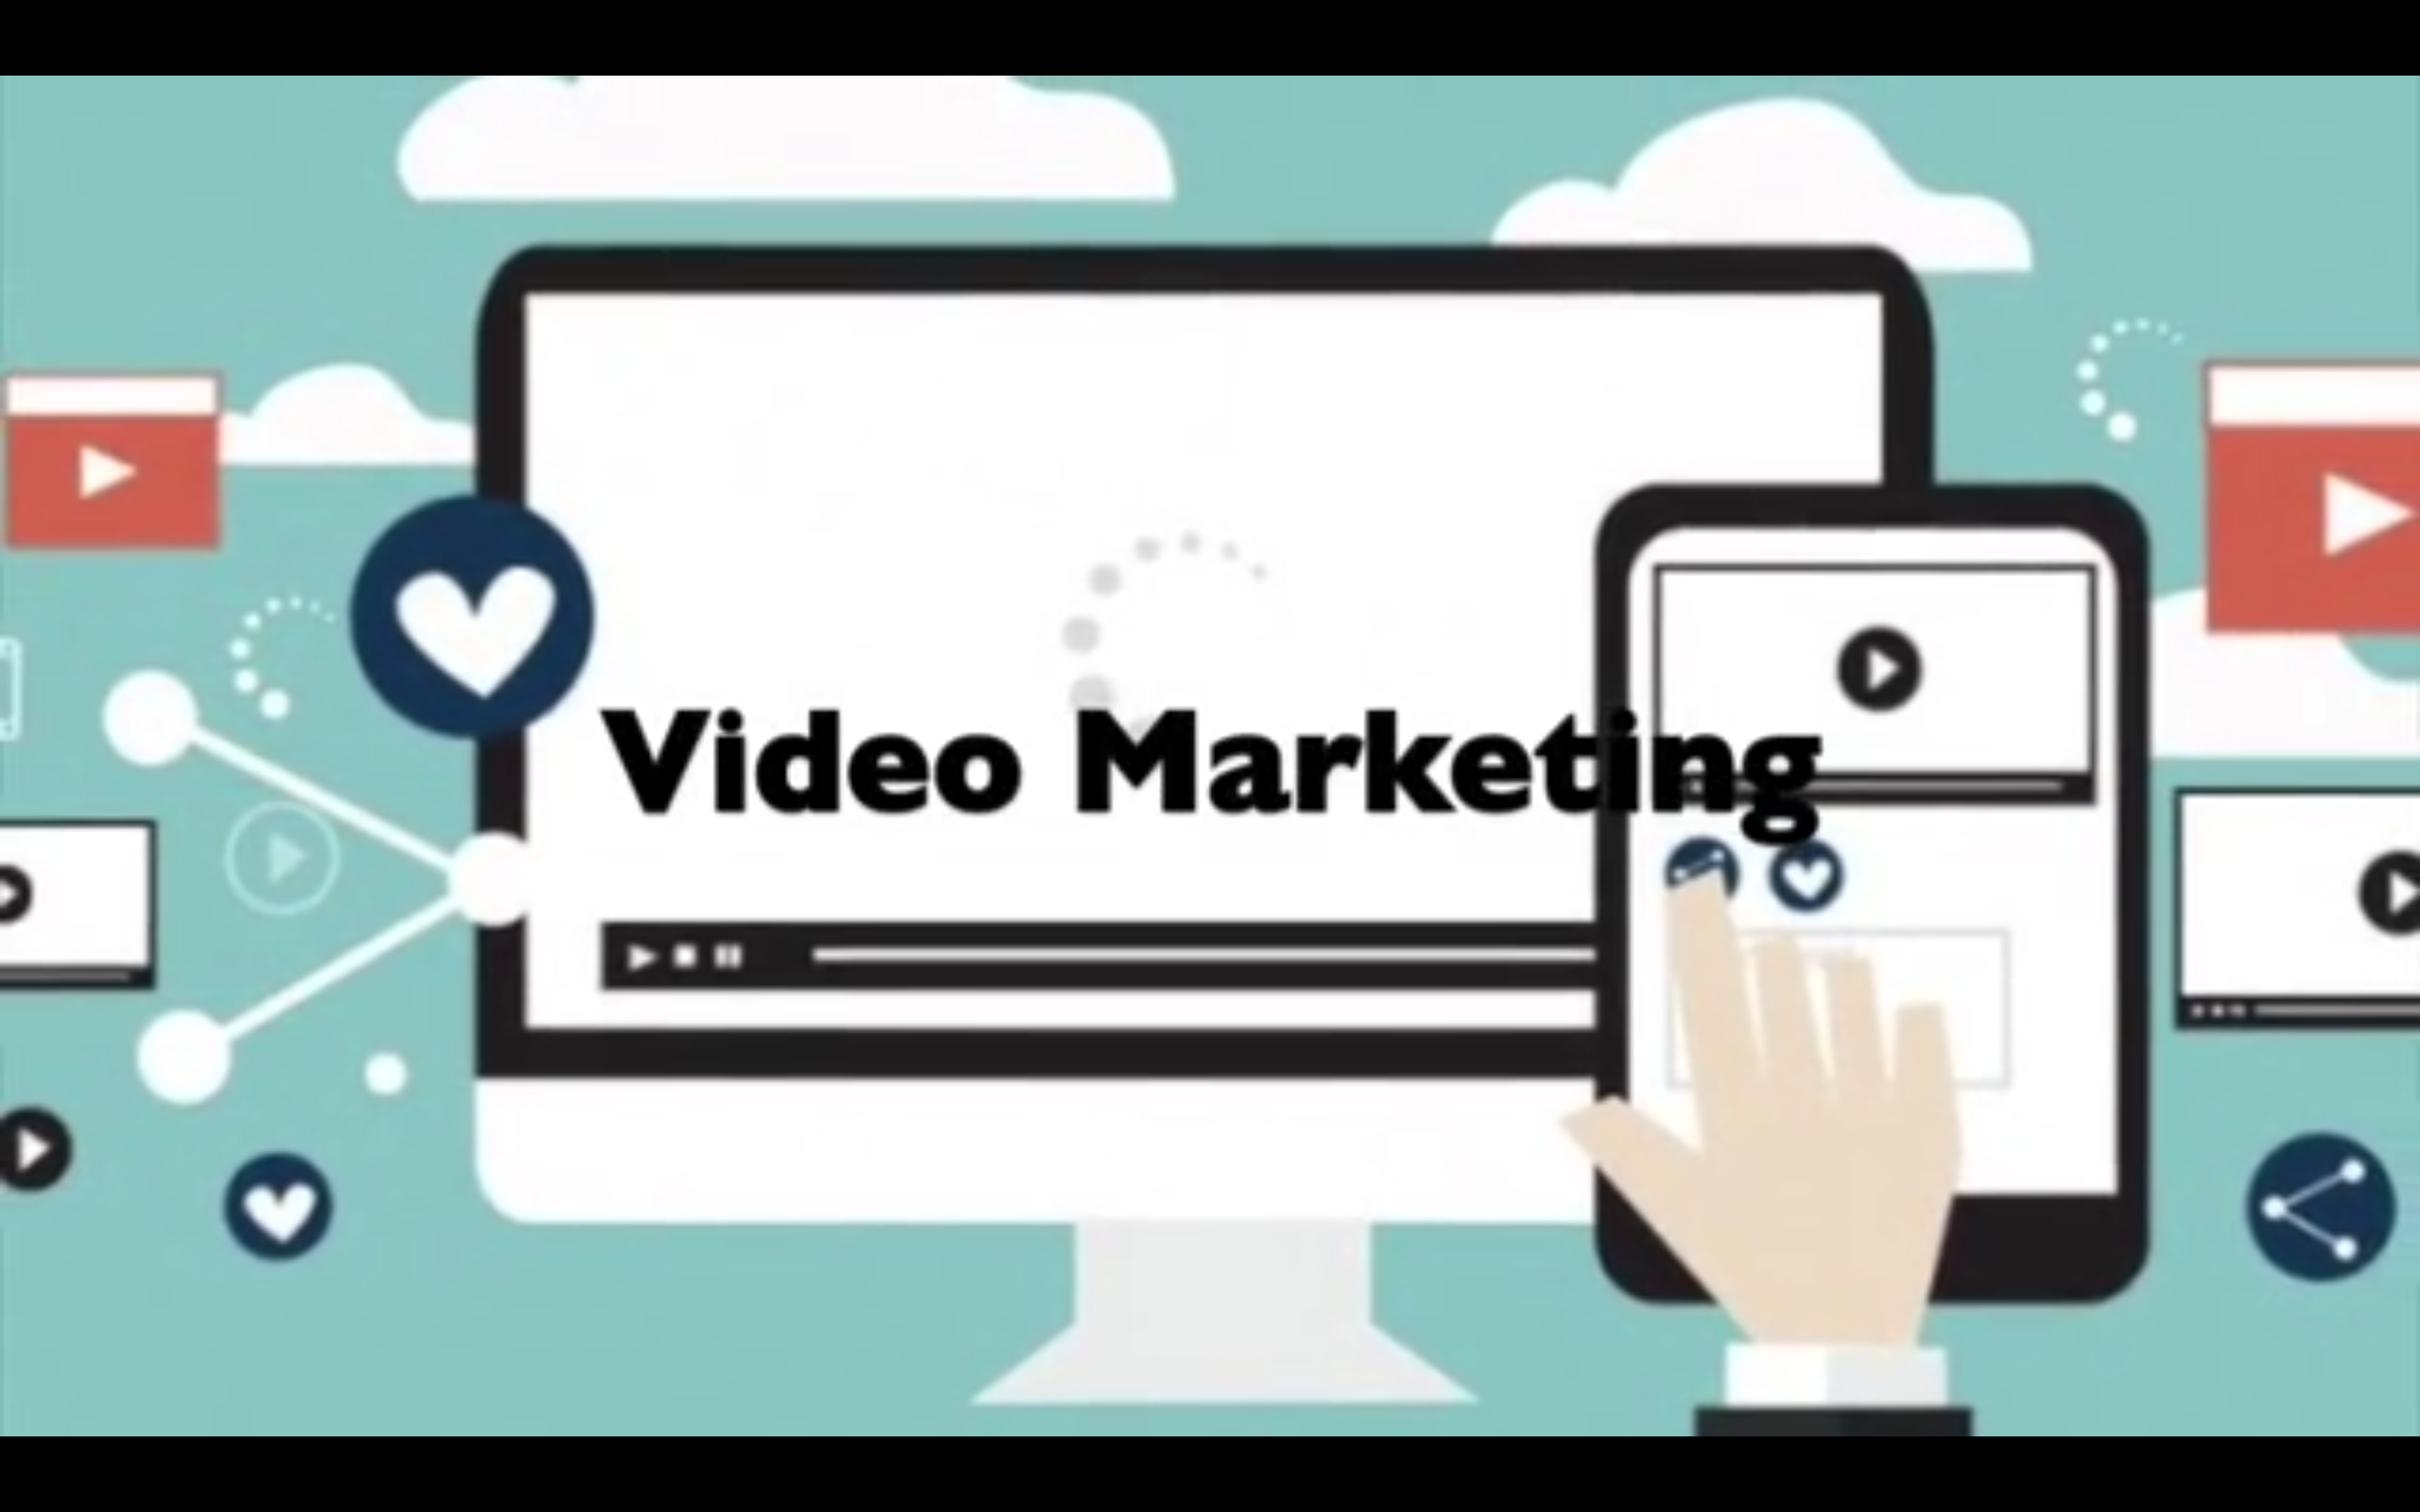 Emprende con Video Marketing